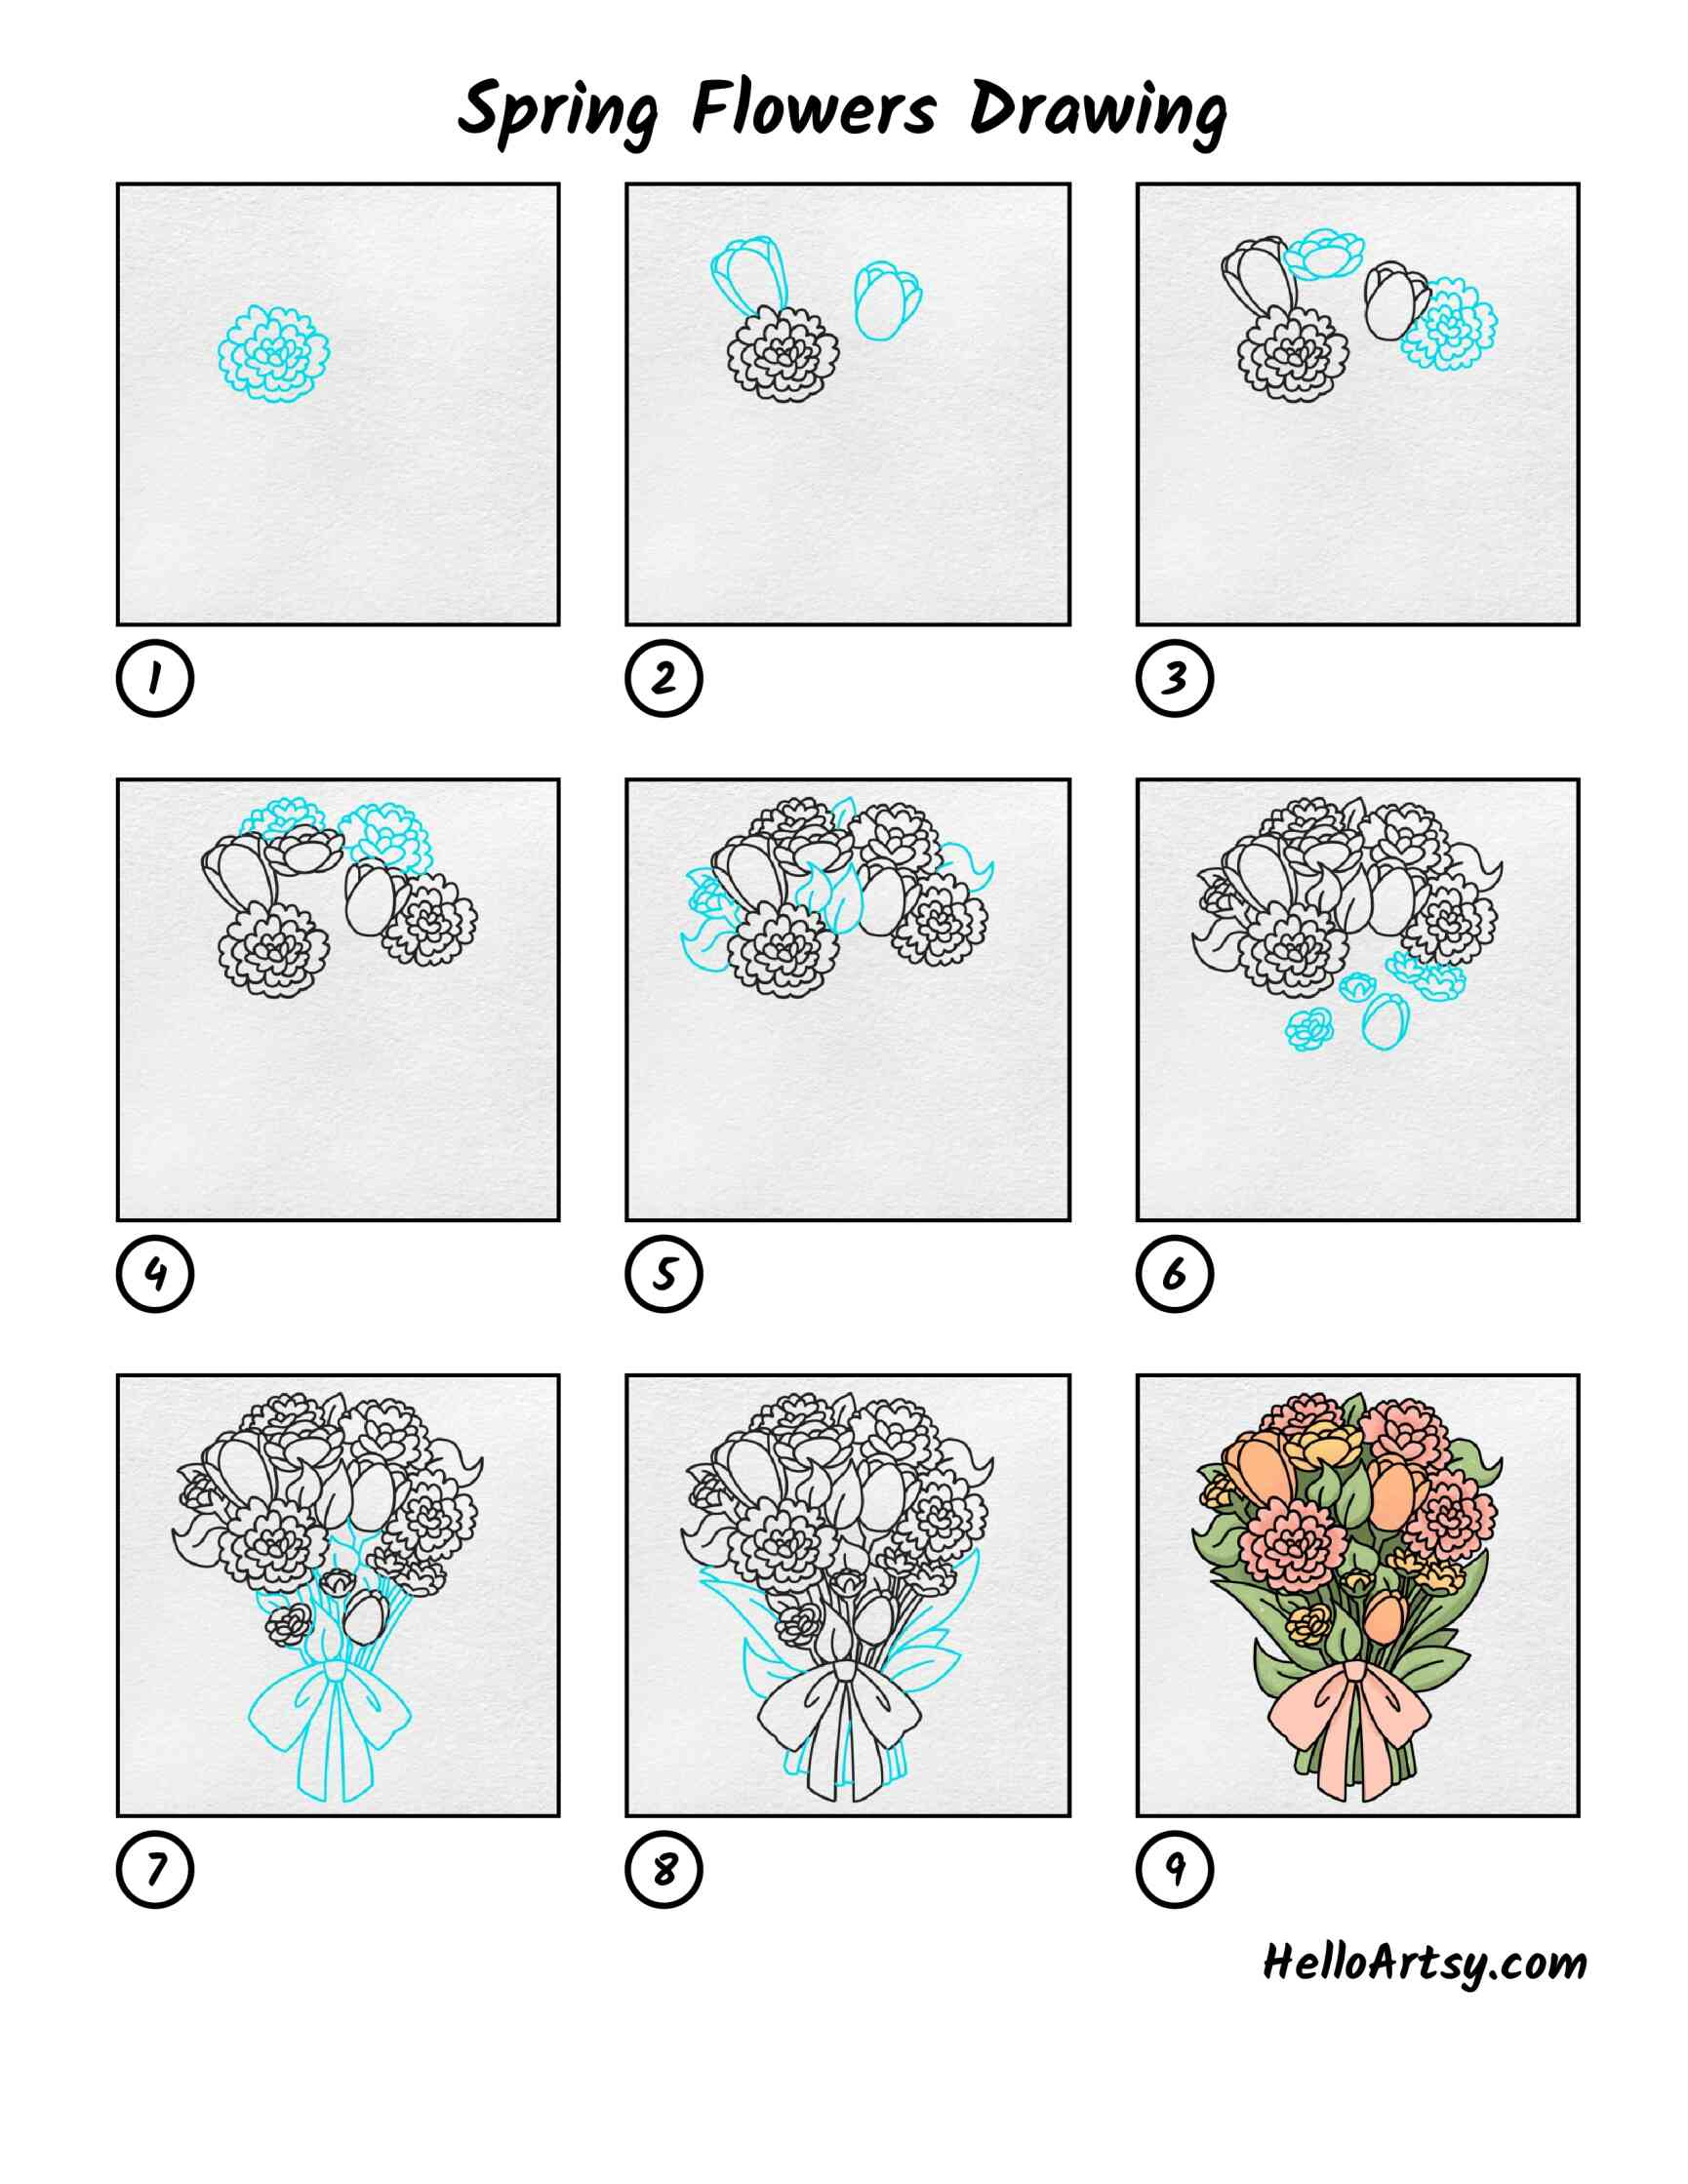 Spring Flowers Drawing: All Steps